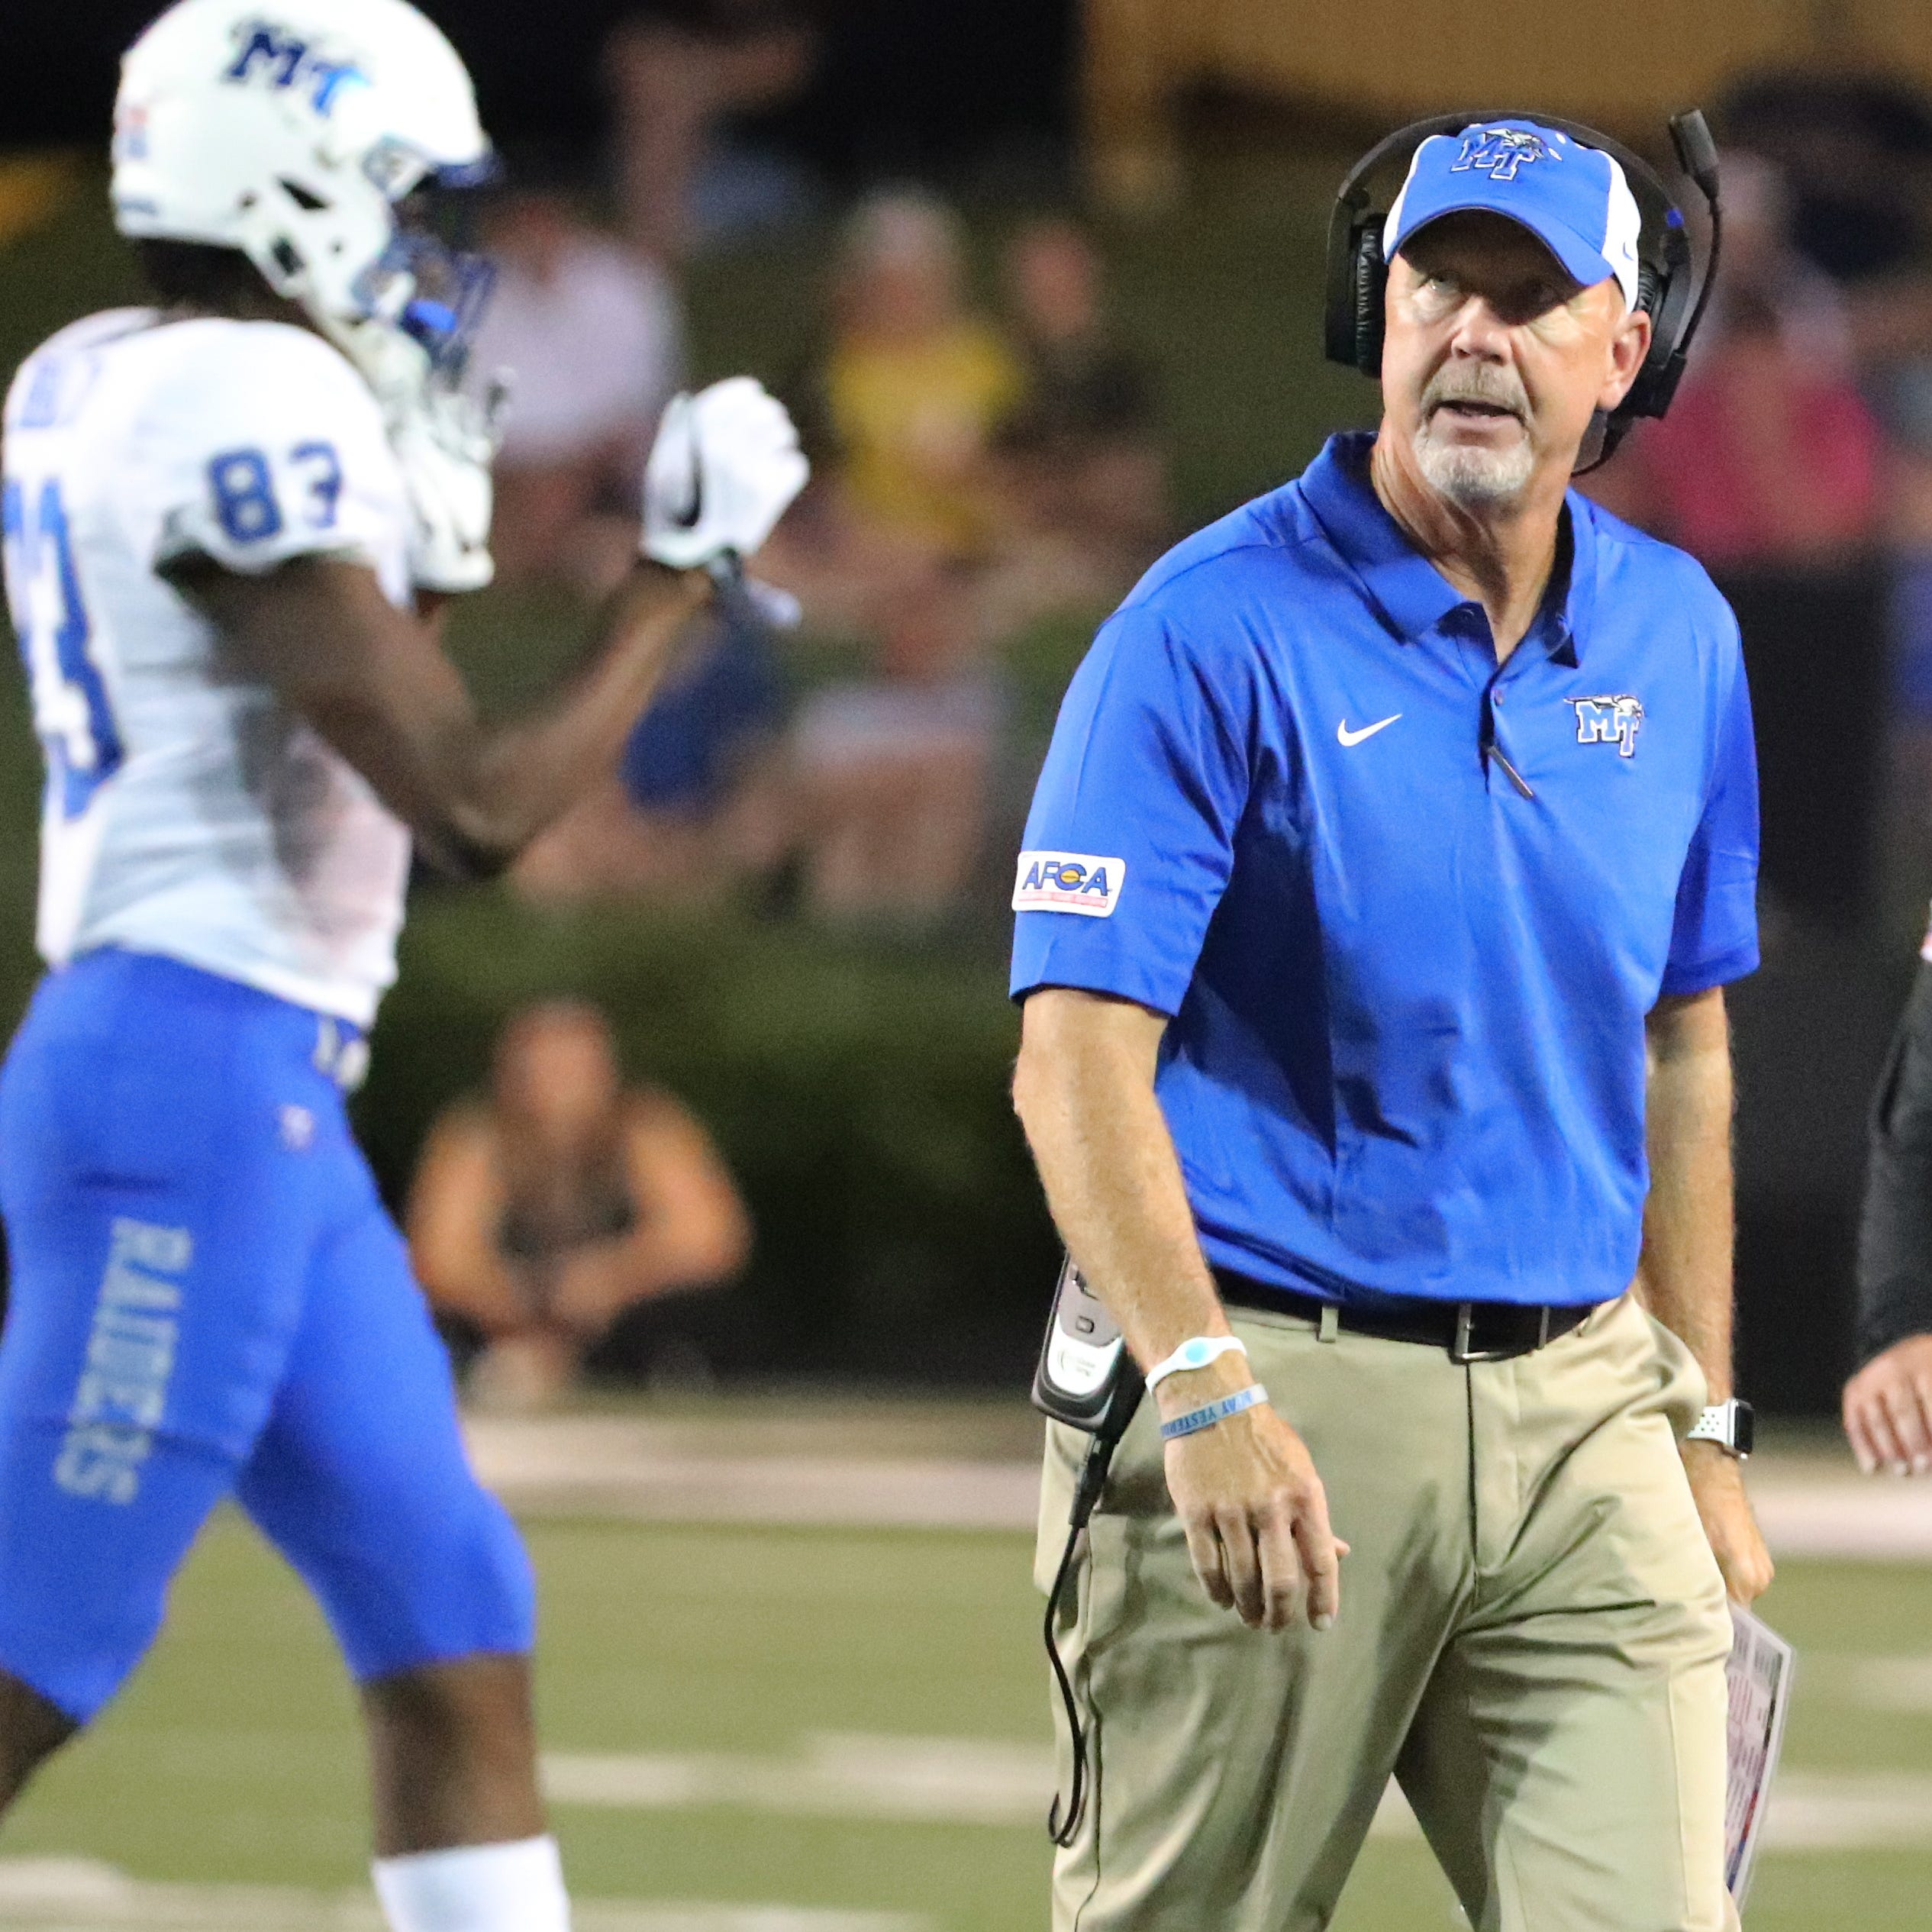 MTSU's schedule includes three Power 5 teams. Is it worth it?